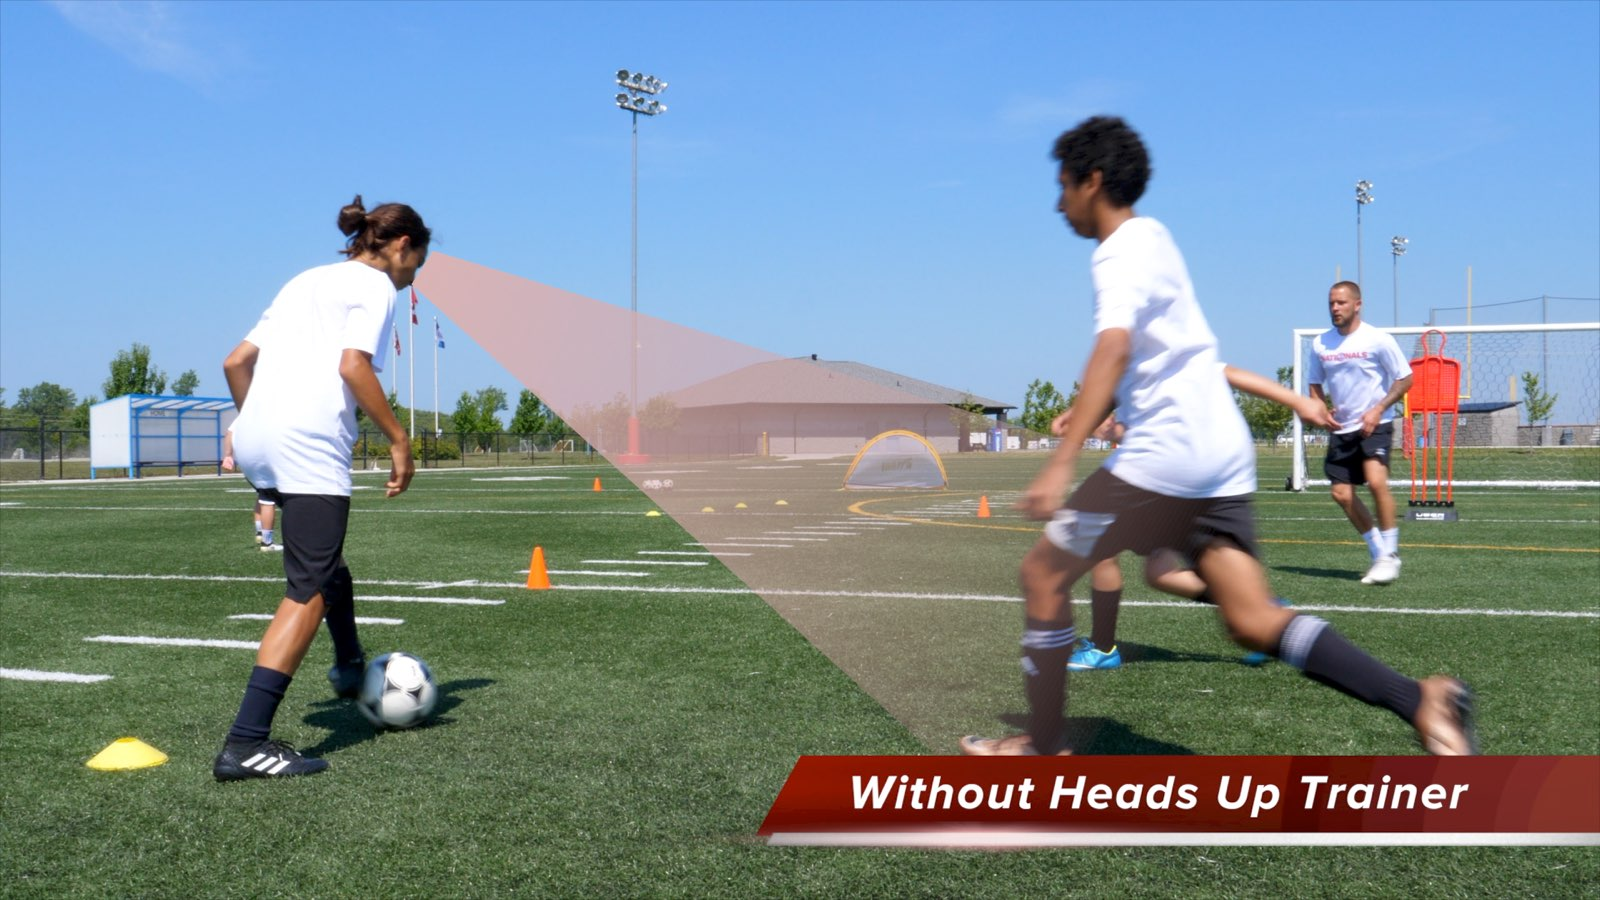 Heads Up Trainer 11